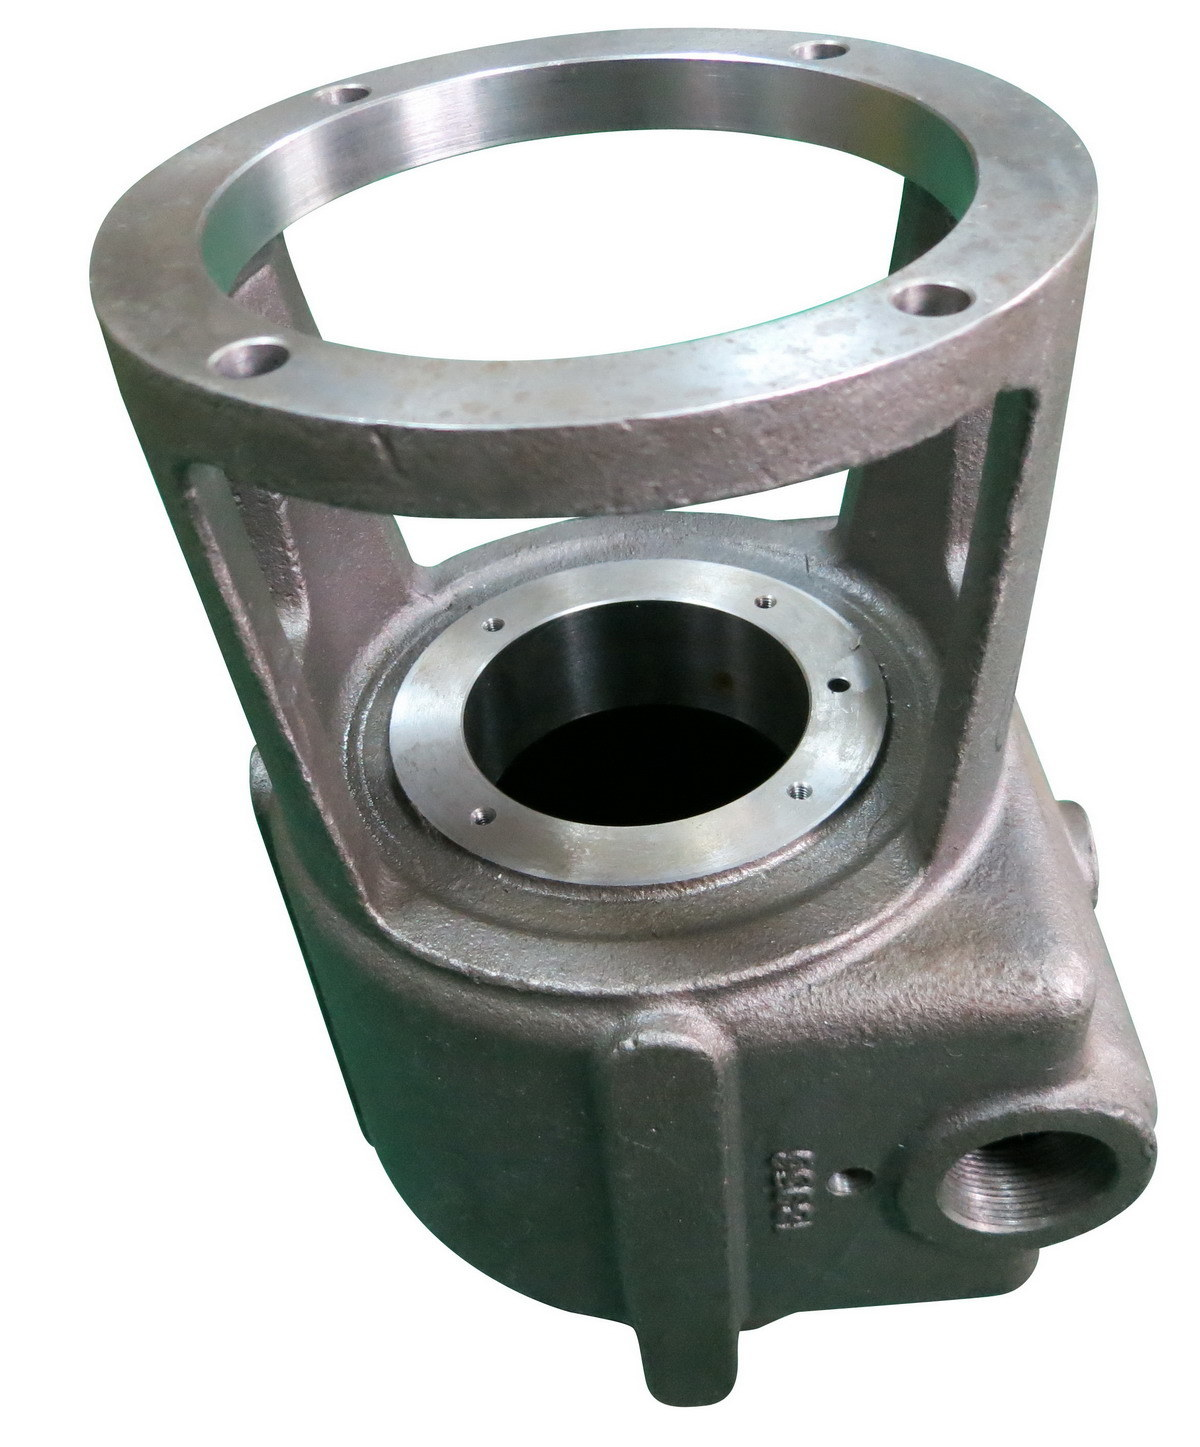 Lost Wax Investment Casting+CNC Machining-a World Class Manufacturer (24 years experience, 20, 000 tons capacity, TS16949)